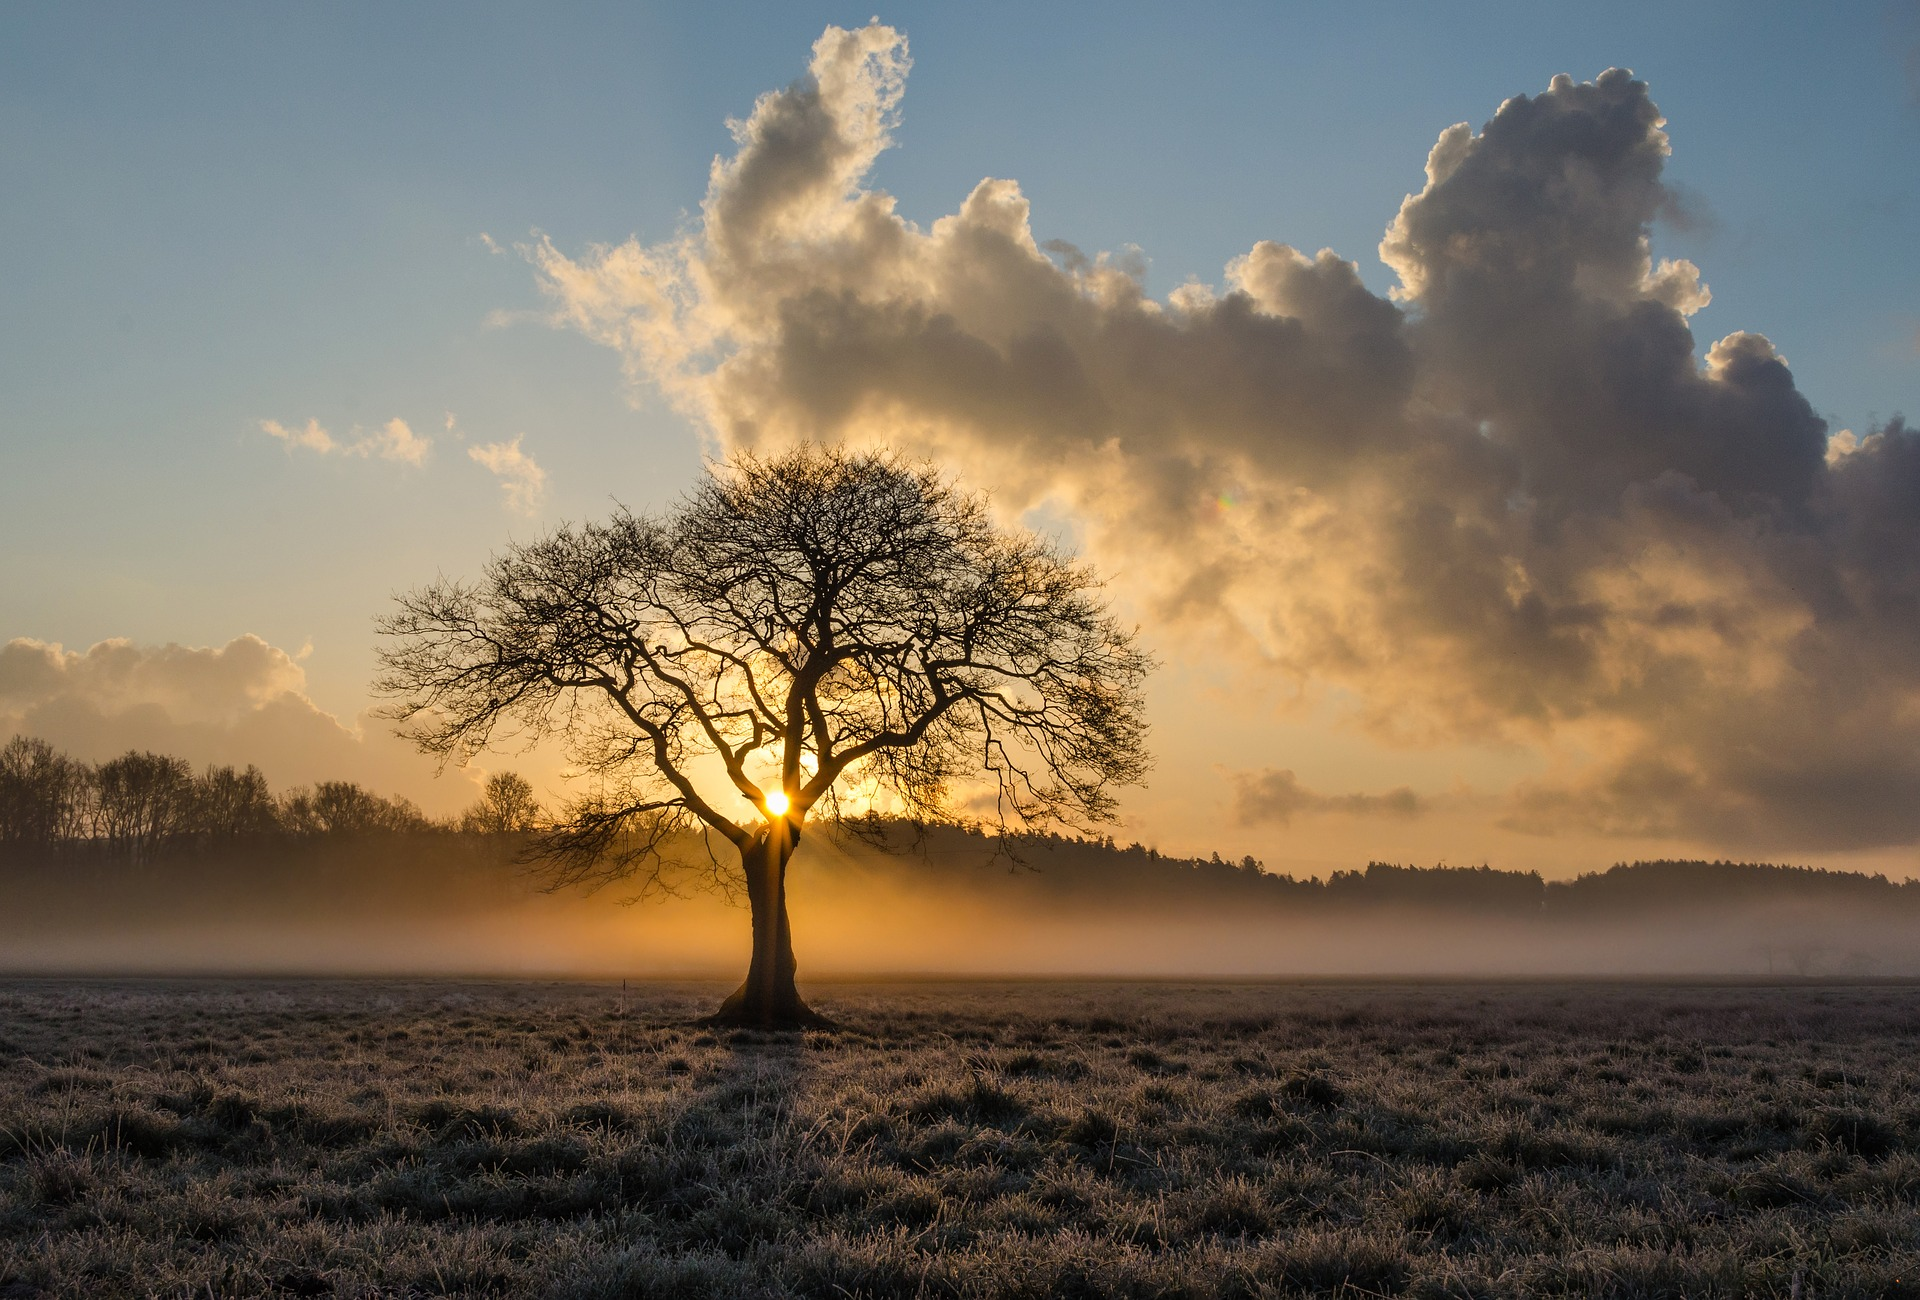 A Lone Oak tree in the sunrise on a fog covered field